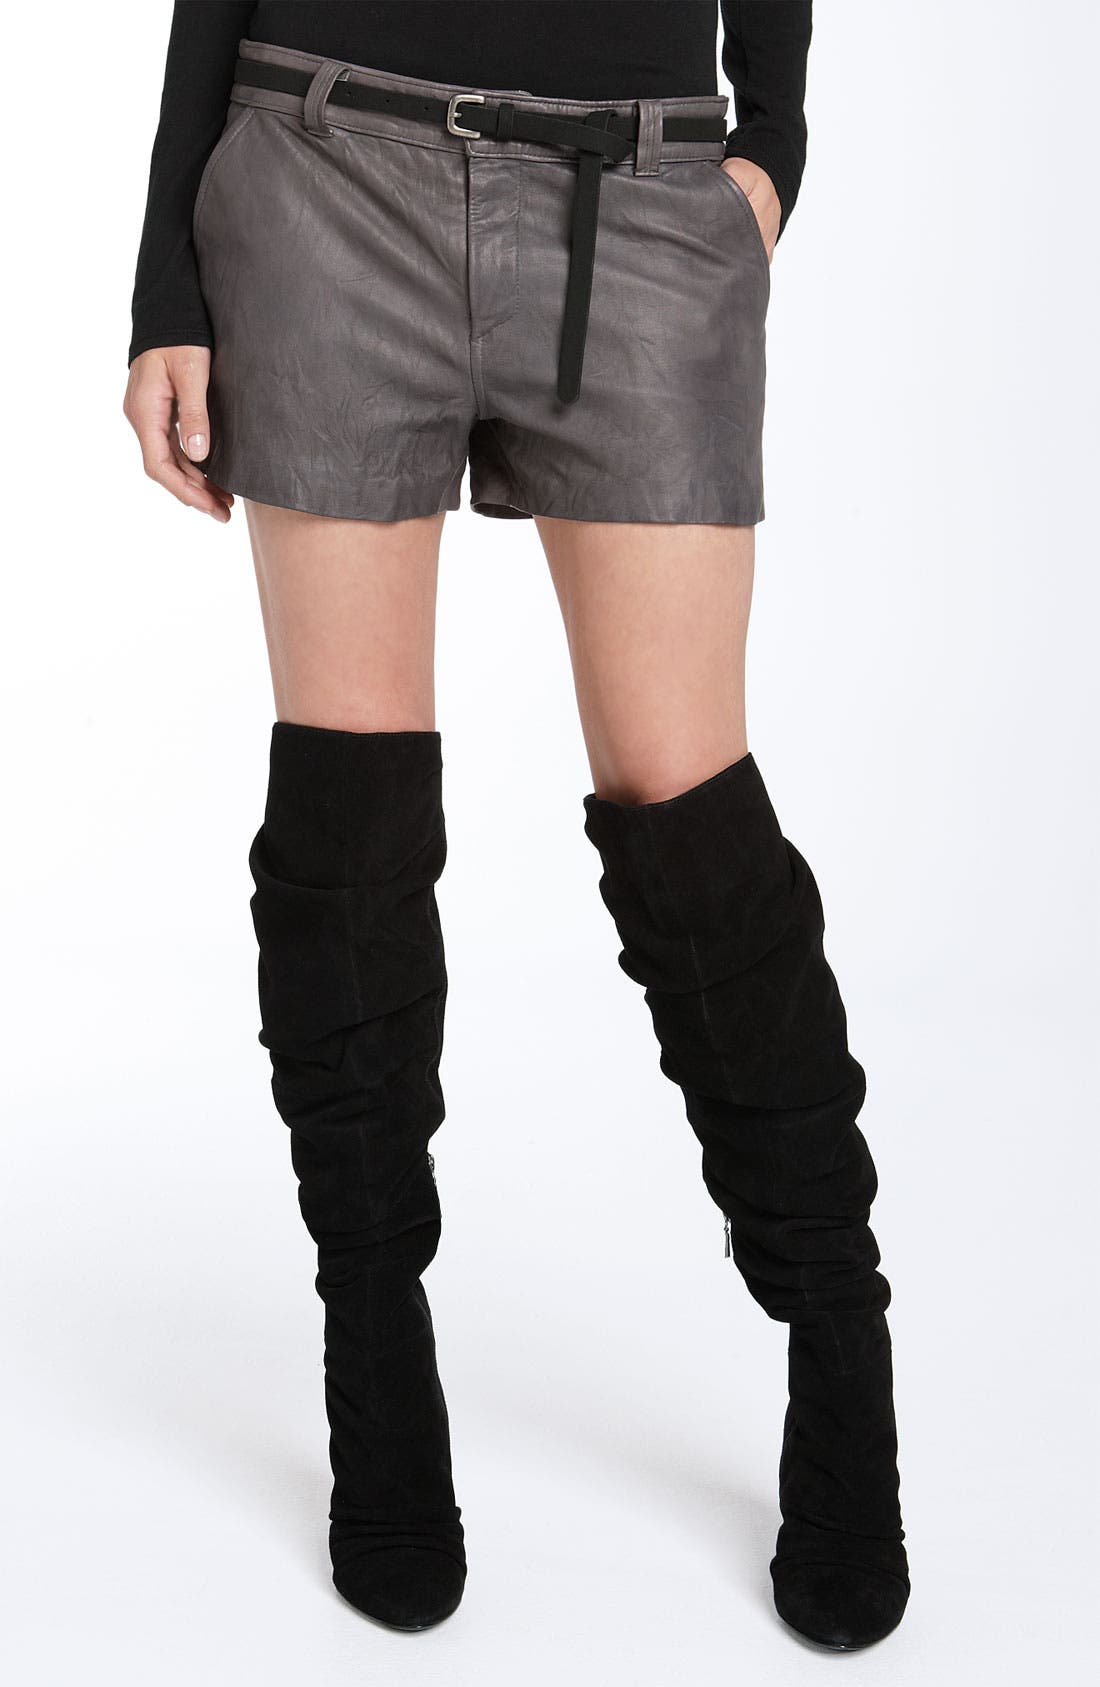 Alternate Image 1 Selected - Joie 'Denver' Leather Shorts